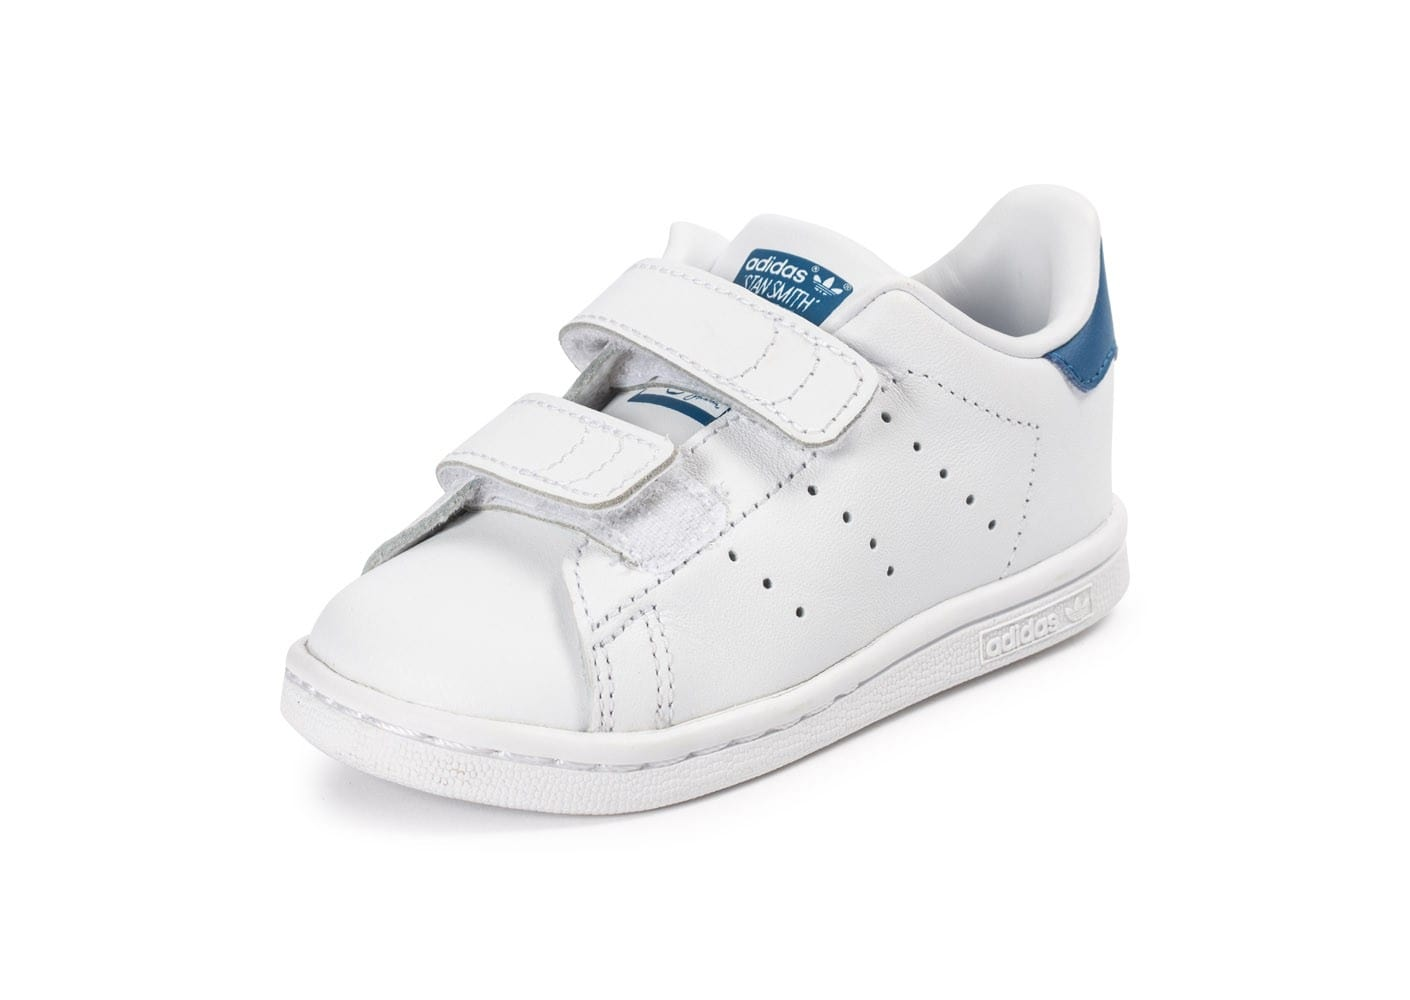 adidas stan smith b b blanche et bleue chaussures adidas chausport. Black Bedroom Furniture Sets. Home Design Ideas